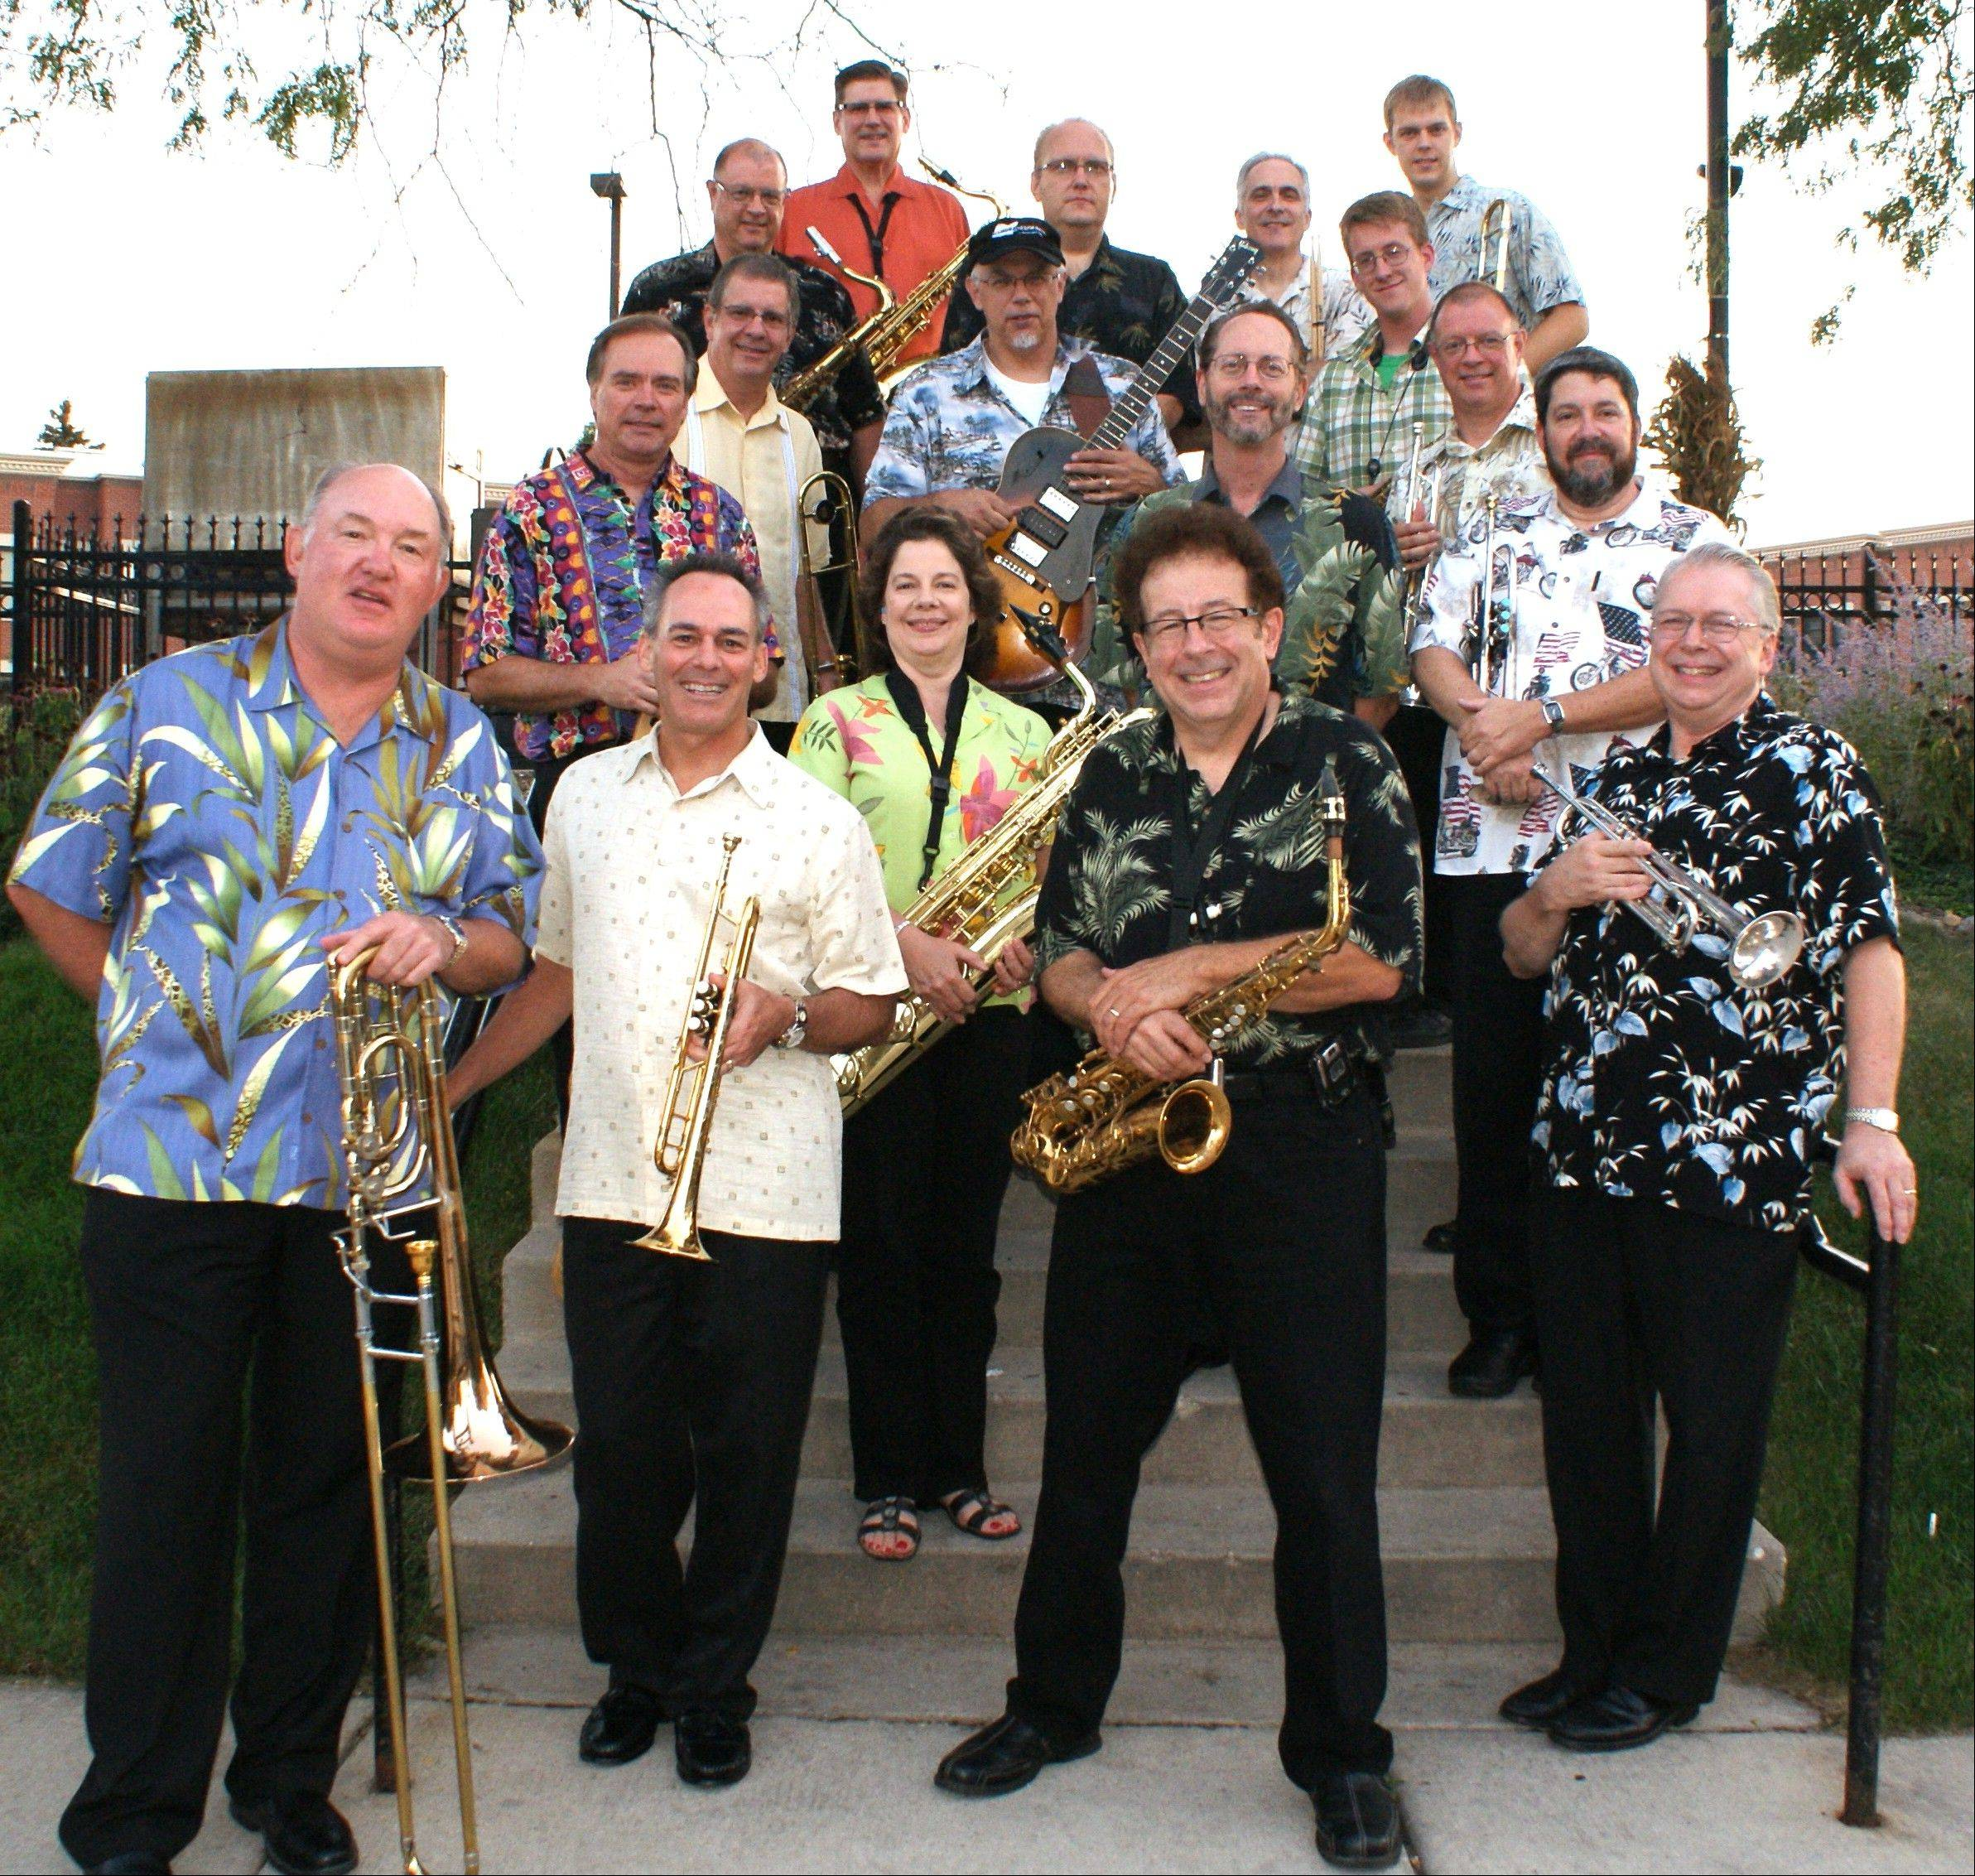 The 17-member Jazz Consortium Big Band is set to headline at Fitzgerald's in Berwyn.